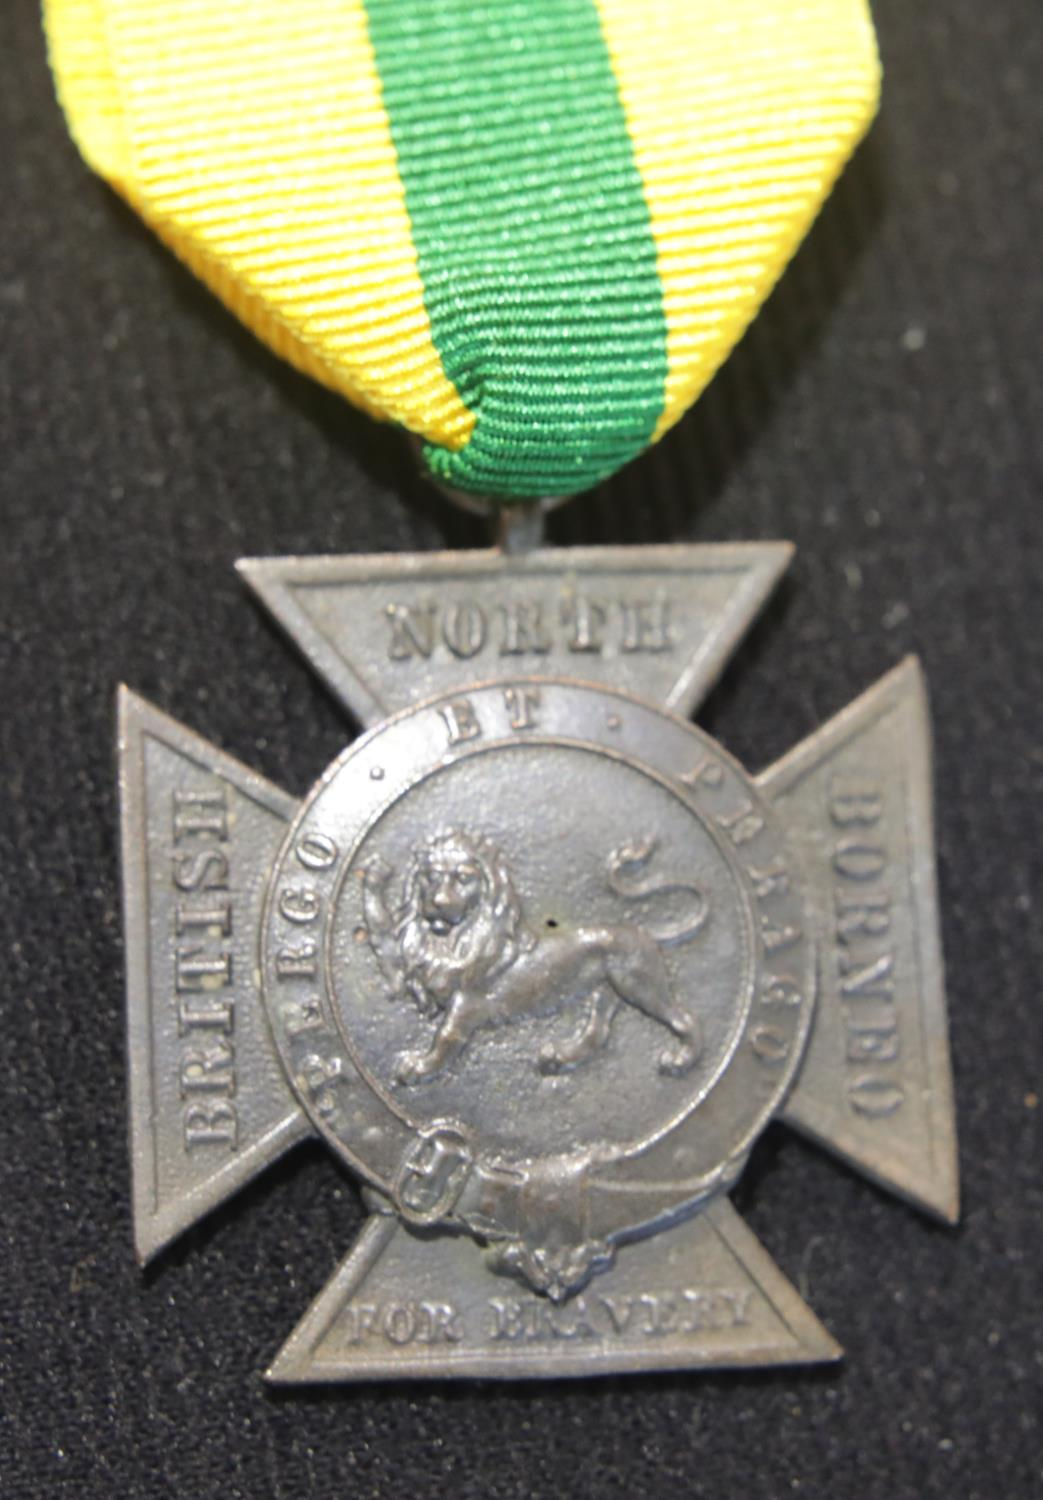 Lot 476 - British North Borneo Bravery cross, not named, in bronze. P&P Group 1 (£14+VAT for the first lot and